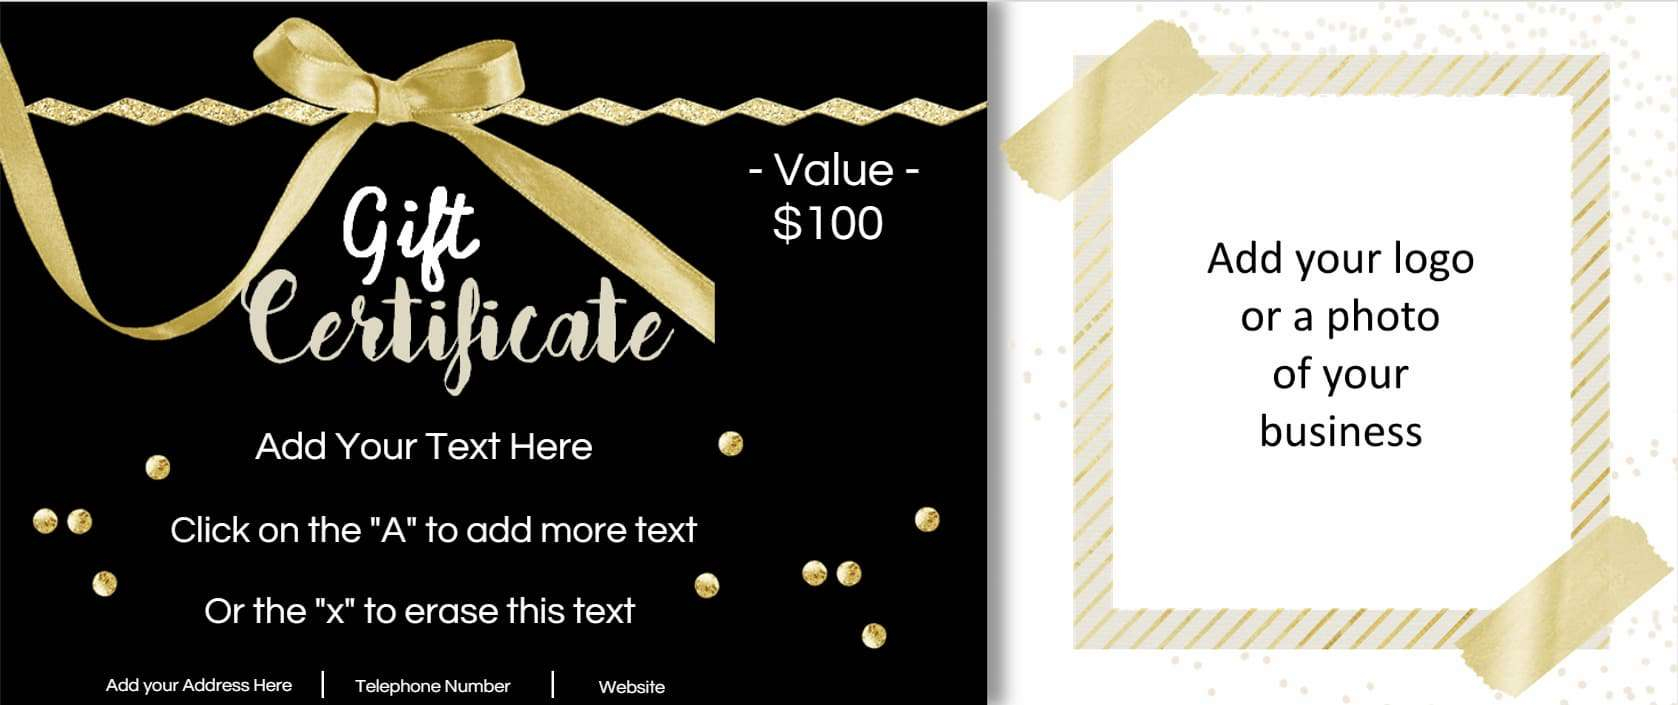 Gift Certificate Template With Logo - Free Printable Photography Gift Certificate Template